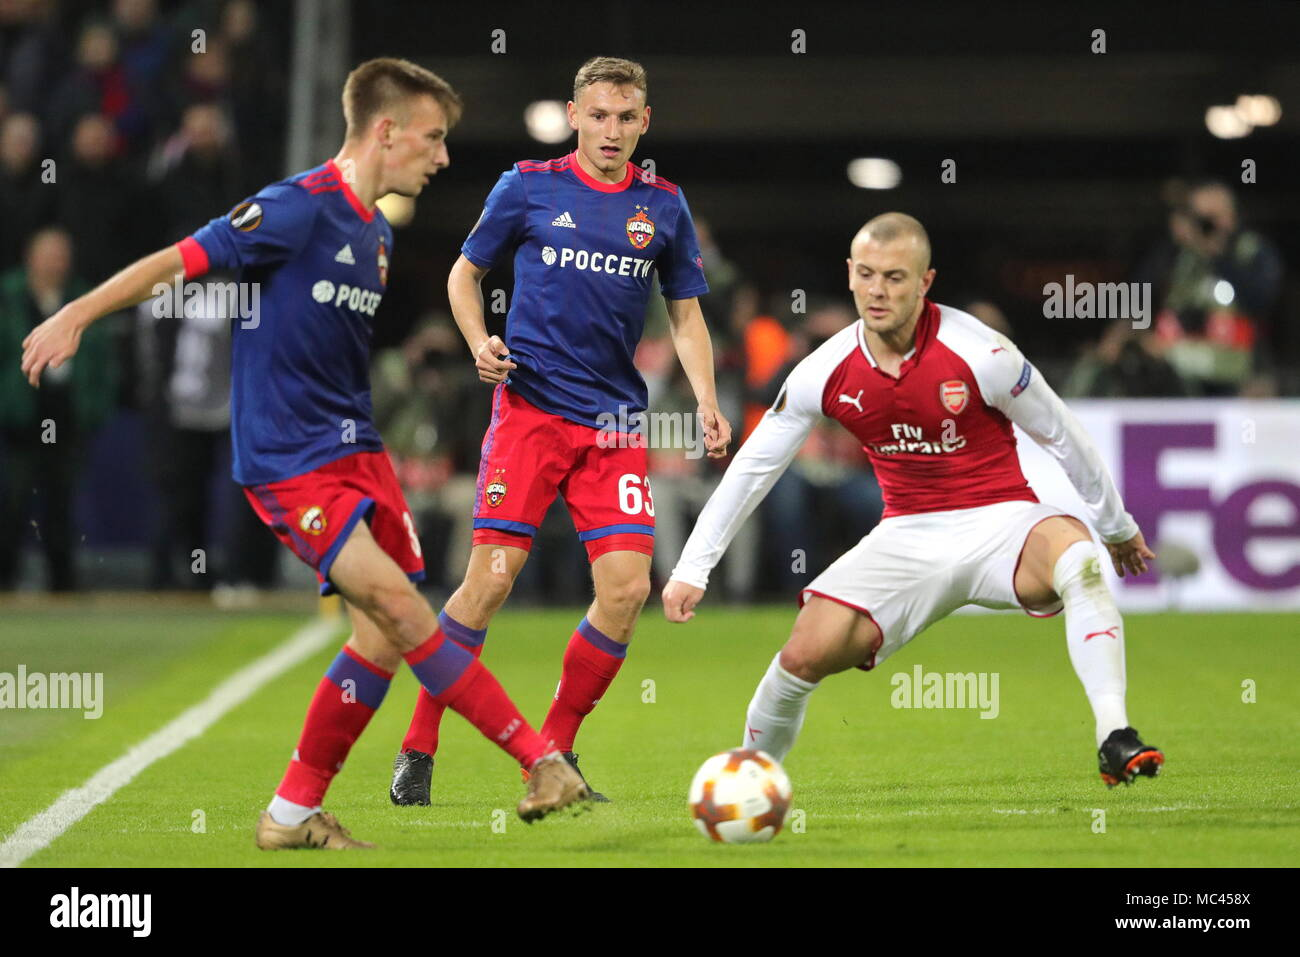 Moscow, Russia. 12th Apr, 2018. MOSCOW, RUSSIA - APRIL 12, 2018: CSKA Moscow's Konstantin Kuchayev, Fyodor Chalov and Arsenal F.C.'s Jack Wilshere (L-R) fight for the ball in their 2017-2018 UEFA Europa League quarterfinal second leg football match at VEB Arena (Arena CSKA). Sergei Bobylev/TASS Credit: ITAR-TASS News Agency/Alamy Live News - Stock Image